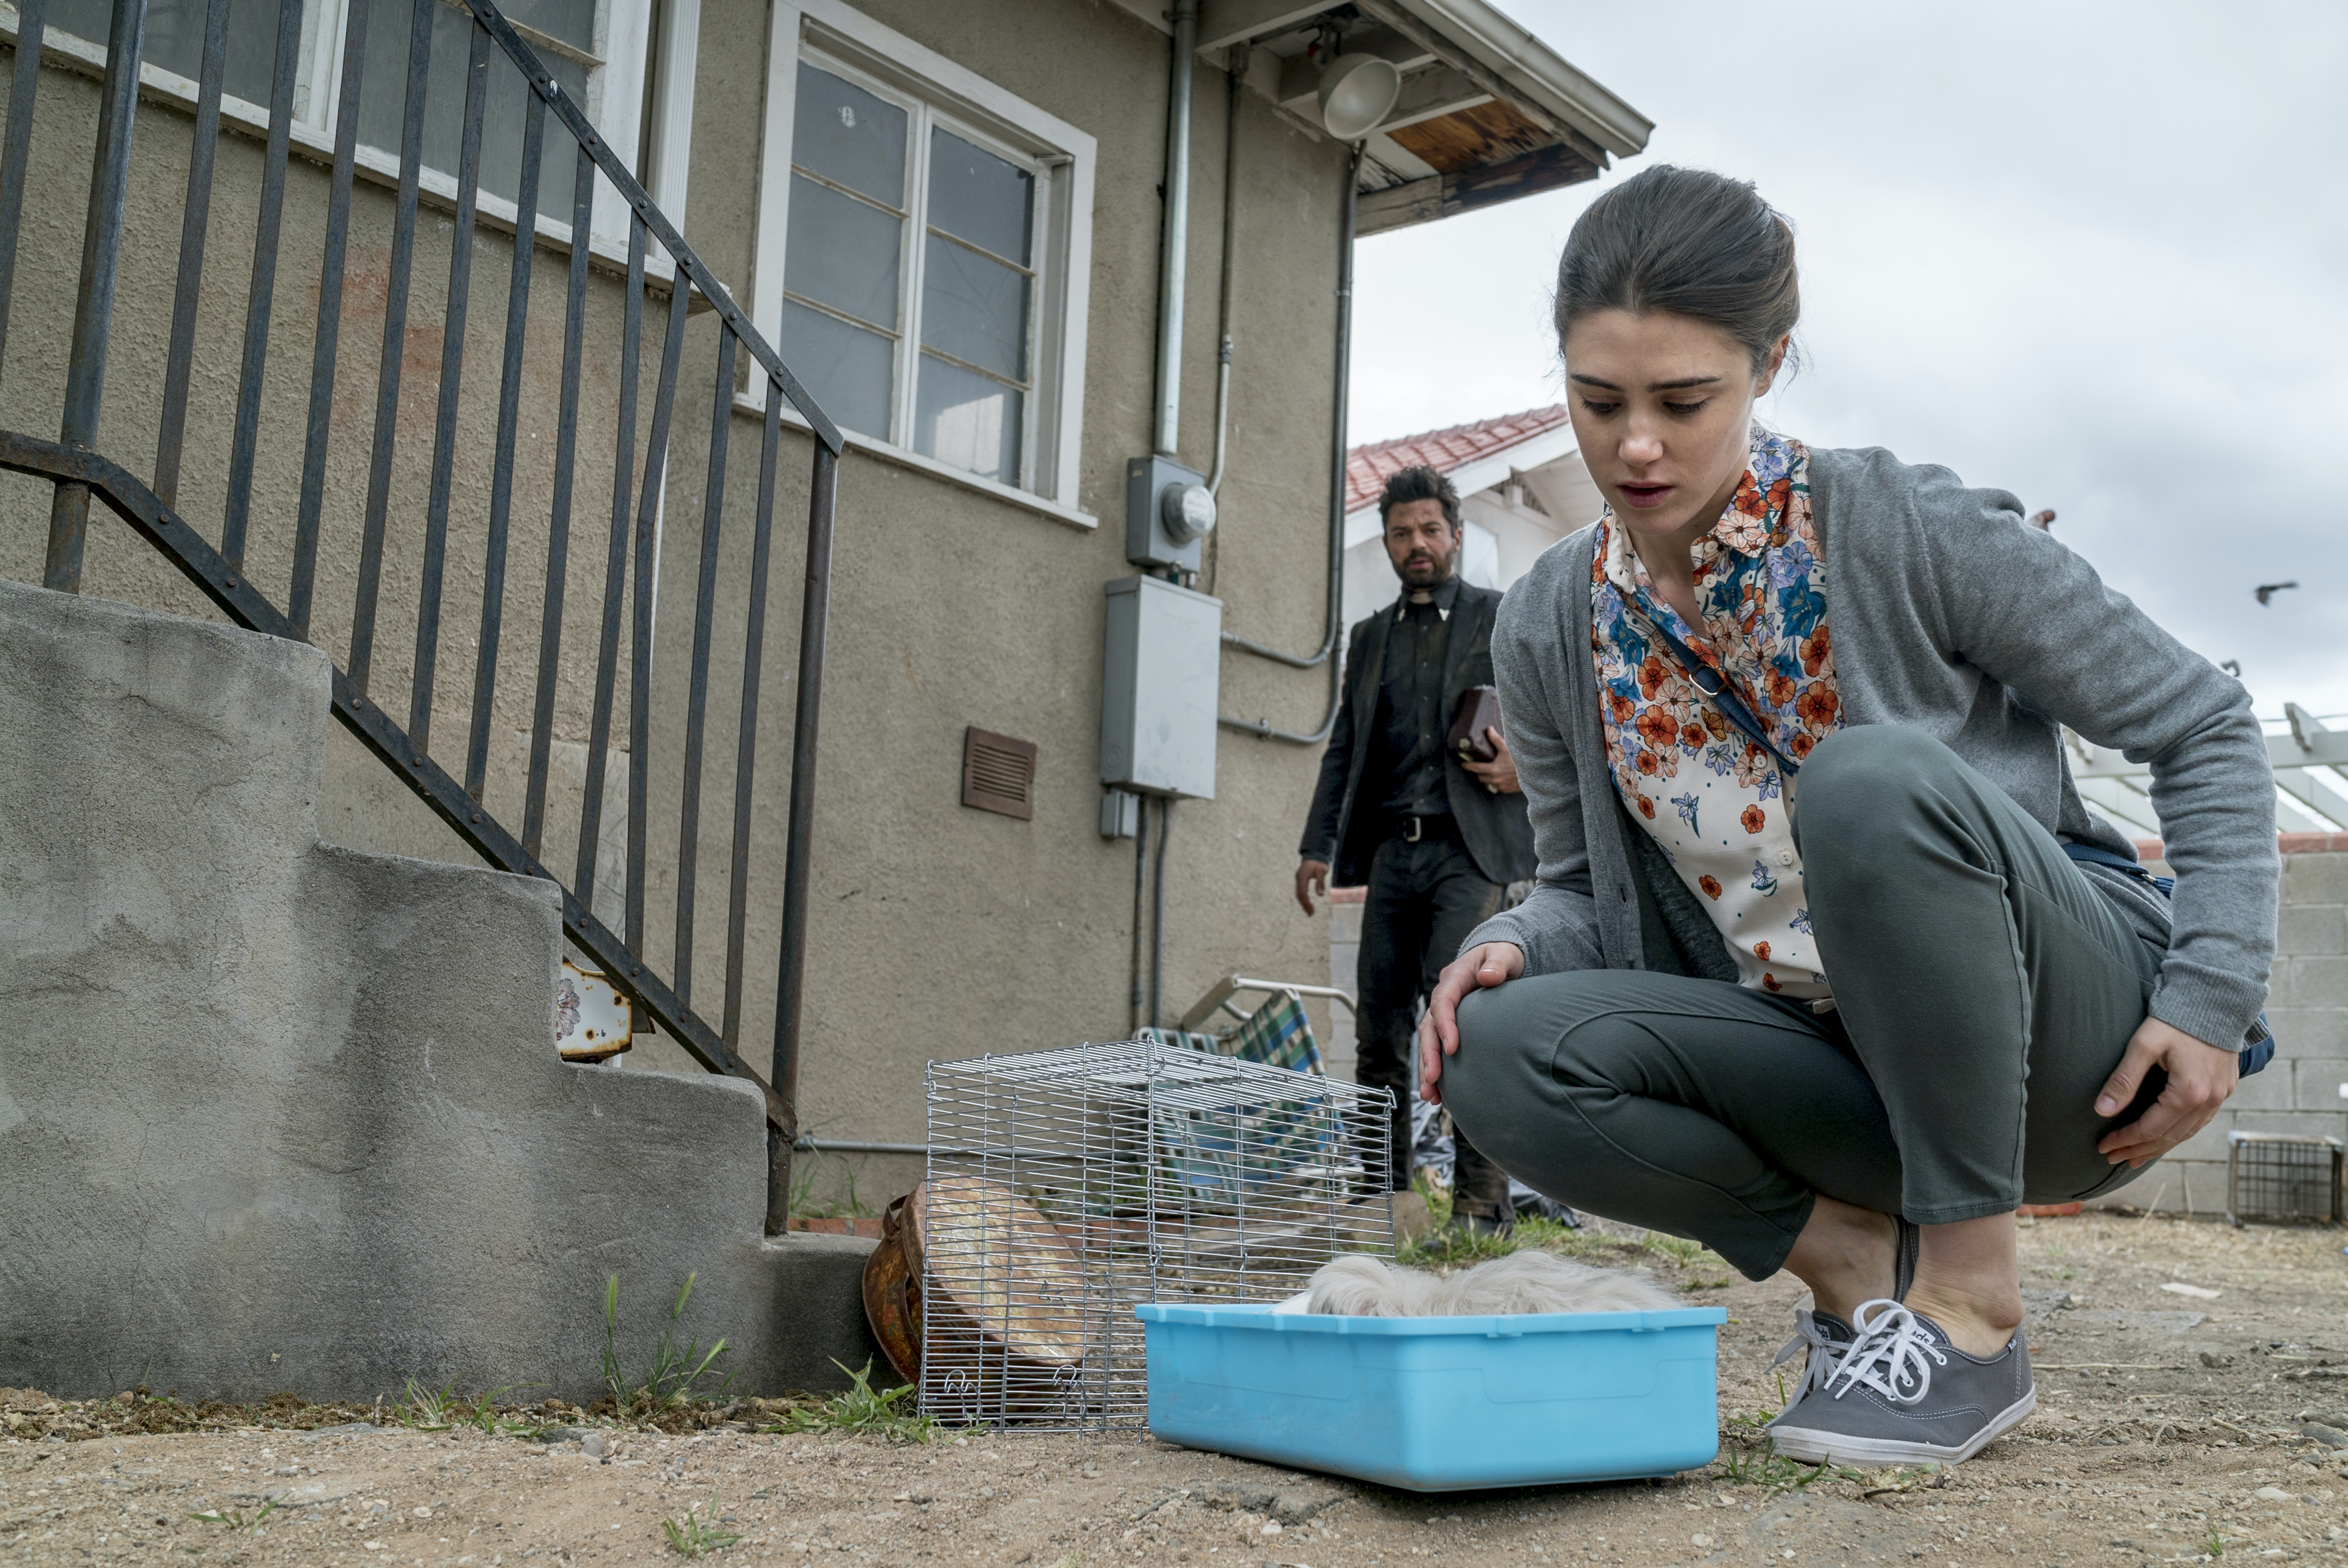 """Emily, just after the deed, in the episode """"Finish the Song"""" in 'Preacher.'"""